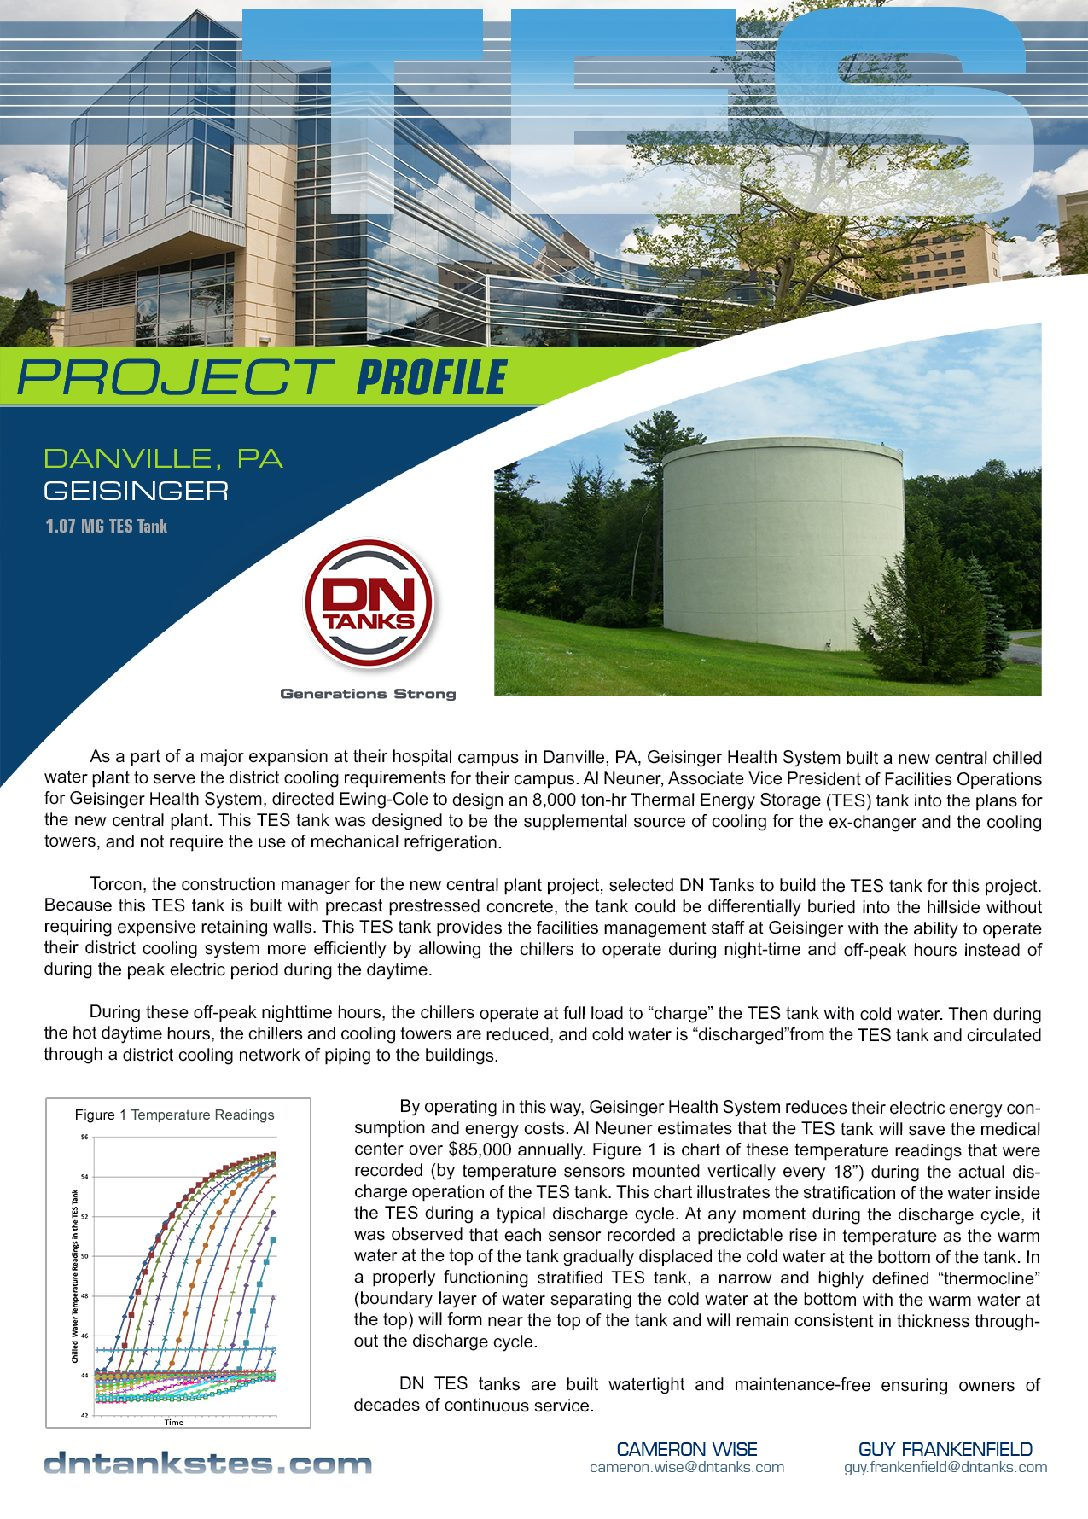 Danville_PA_ProjectProfile • DN Tanks